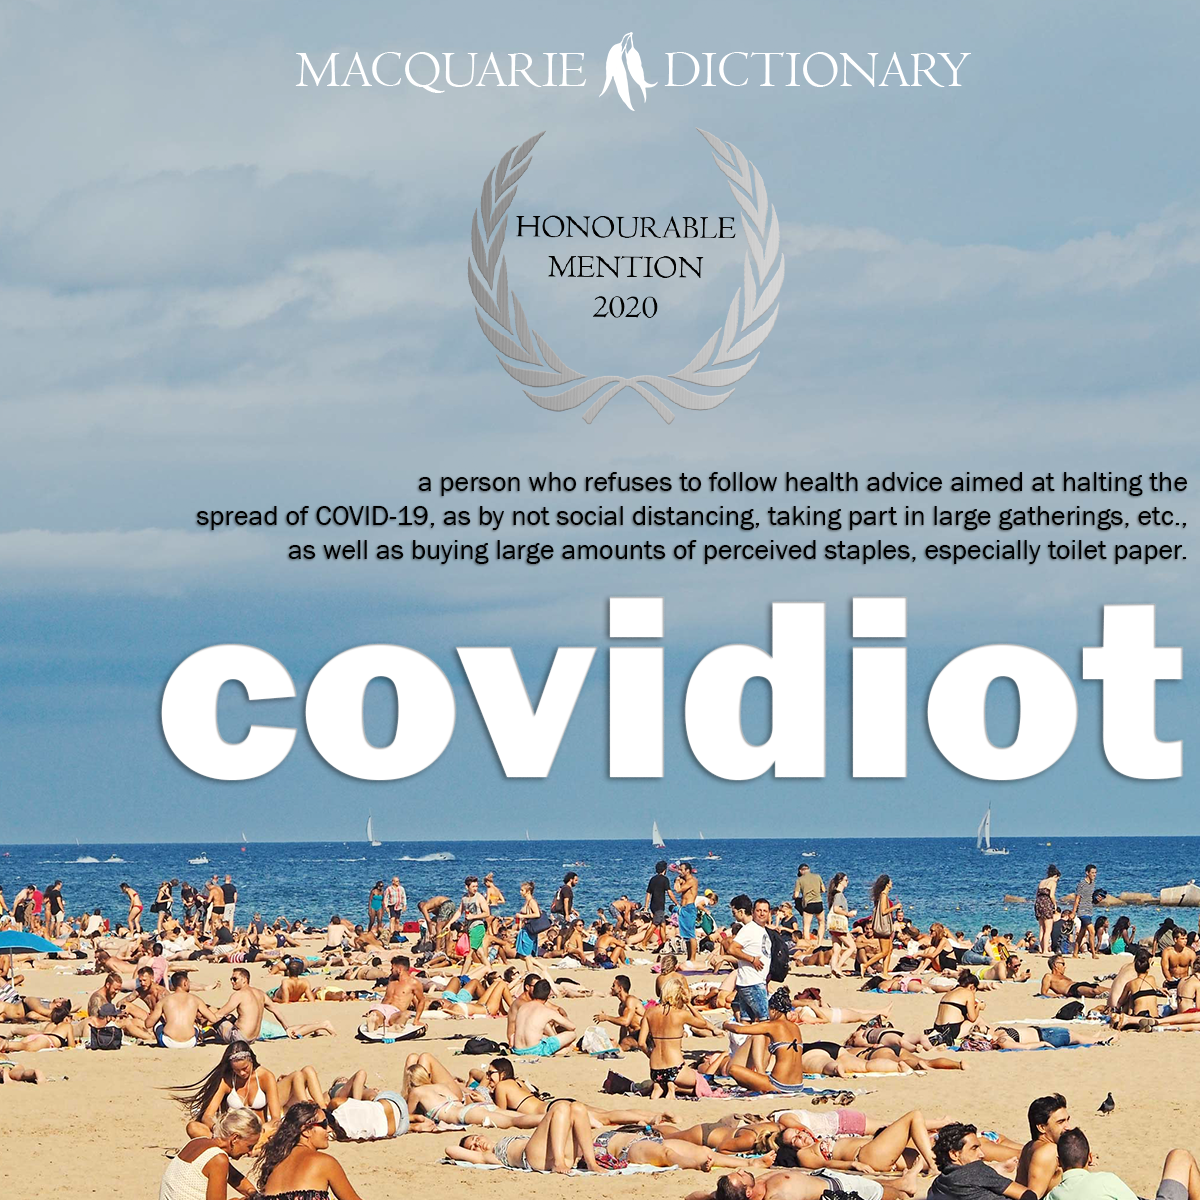 otcovidi - a person who doesn't abide by new restrictions to help stop the spread of COVID-19